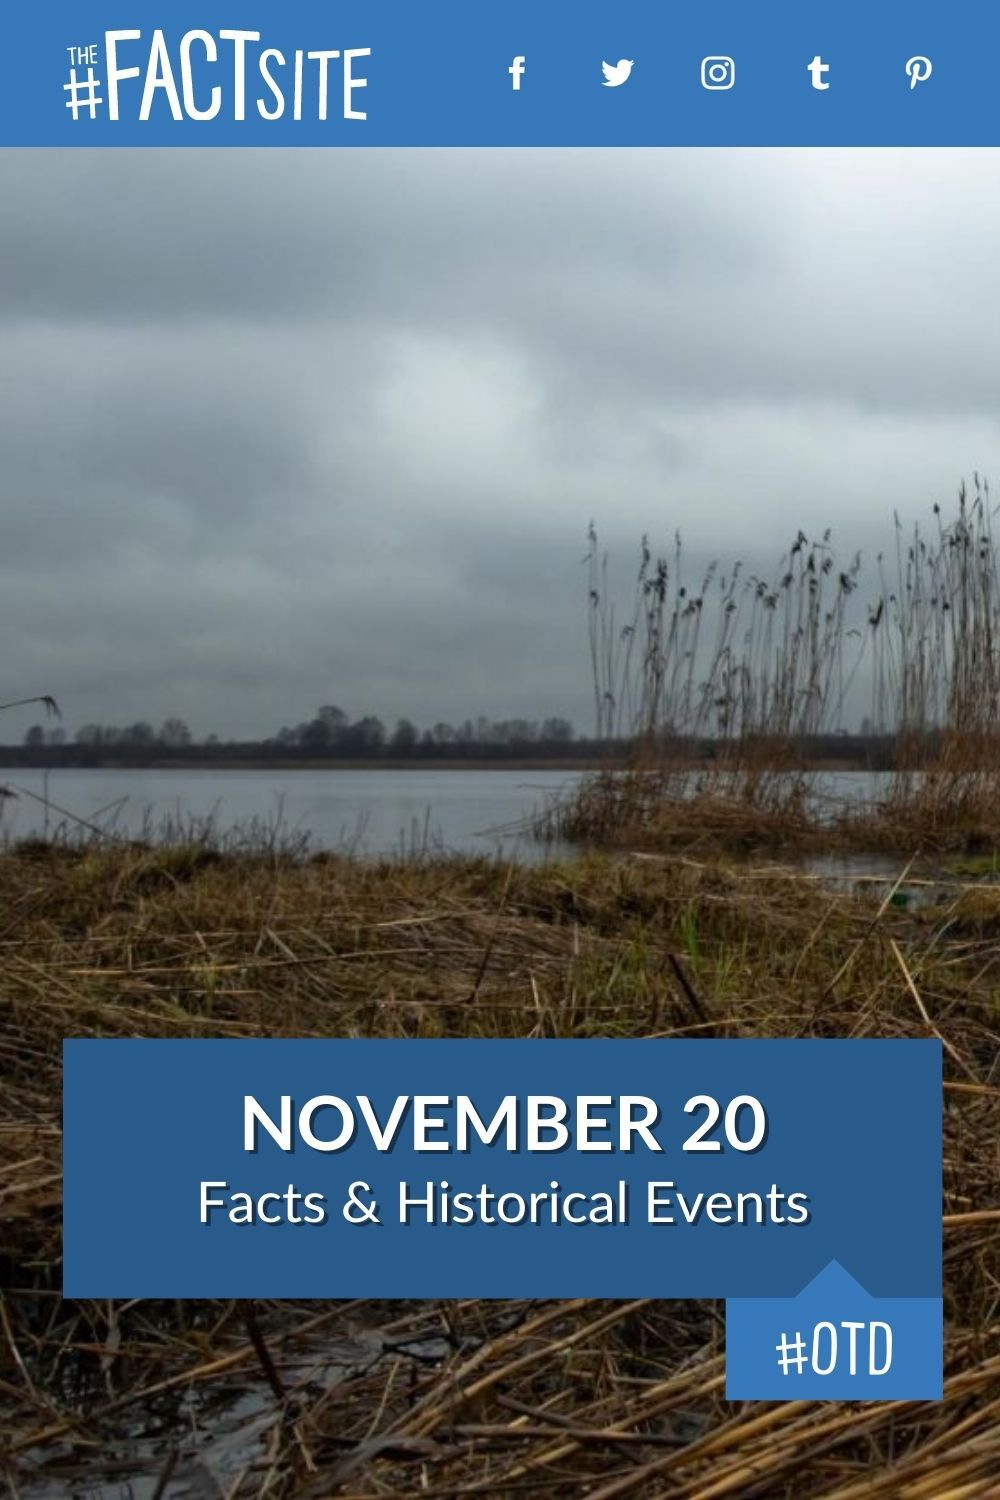 Facts & Historic Events That Happened on November 20